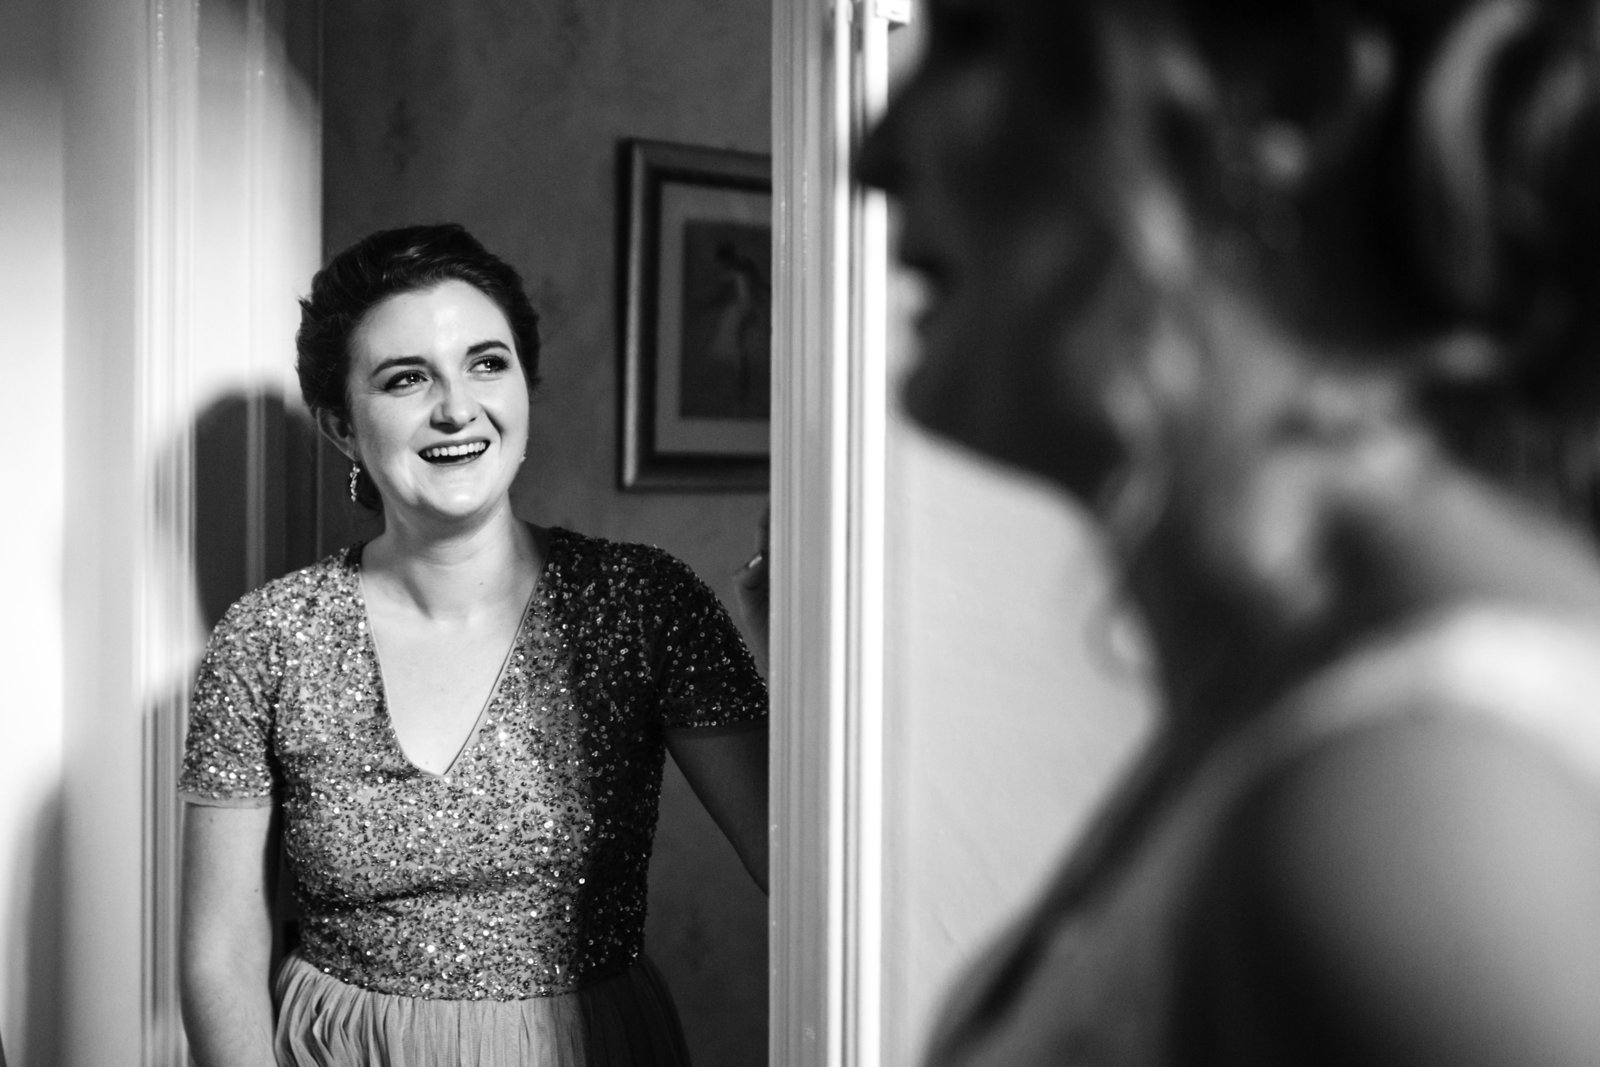 Bridesmaid sees her Sister in her wedding dress for the first time, she smiles and has a happy tear in her eye at a Norfolk barn wedding.